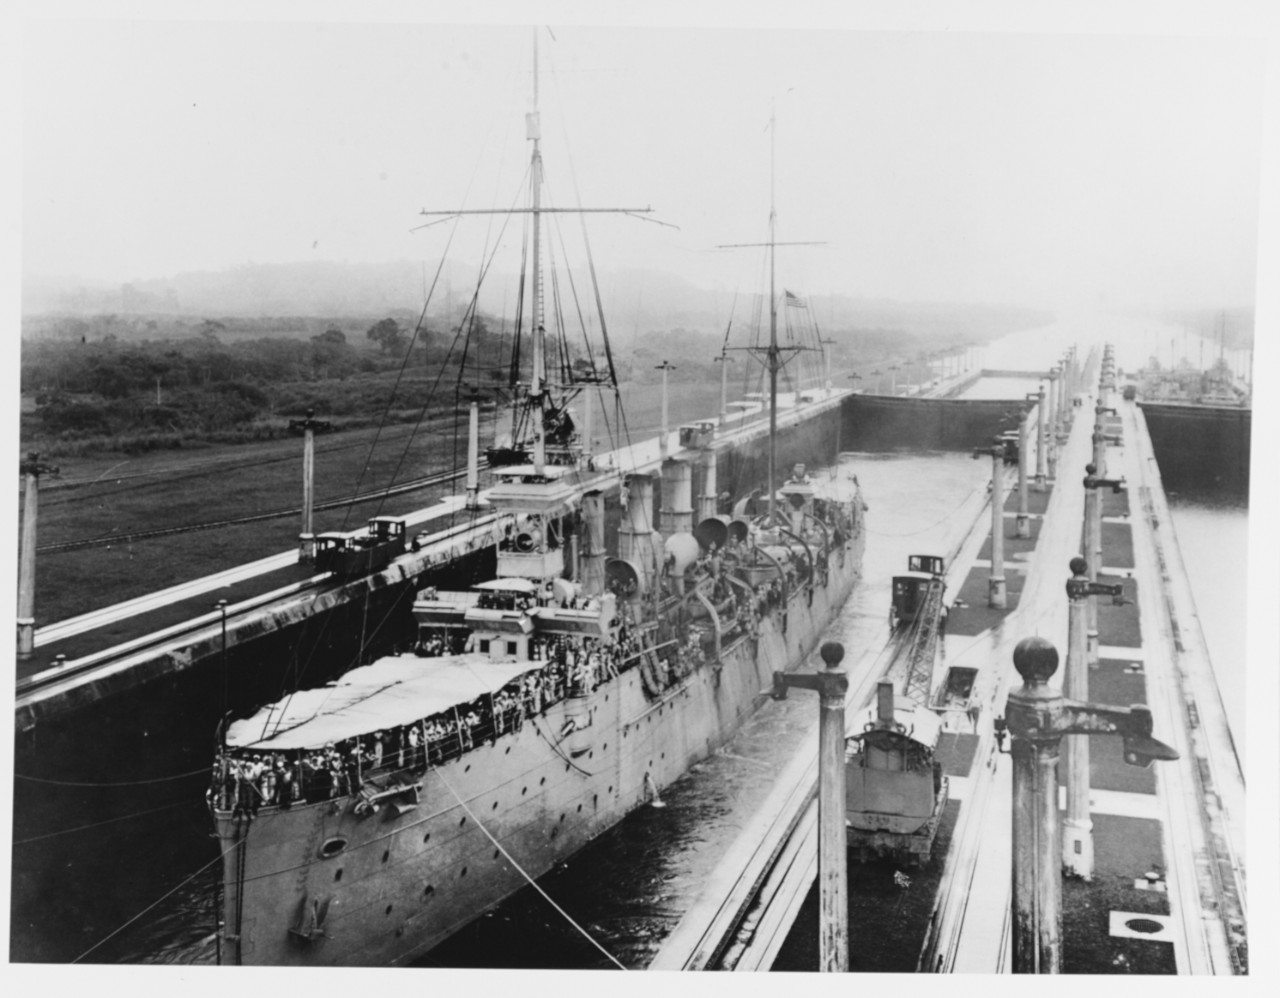 Birmingham glides through the Middle West Chamber of the Gatun Locks while the Pacific Fleet passes through the Panama Canal, 24 July 1919. (Naval History and Heritage Command Photograph NH 75717)